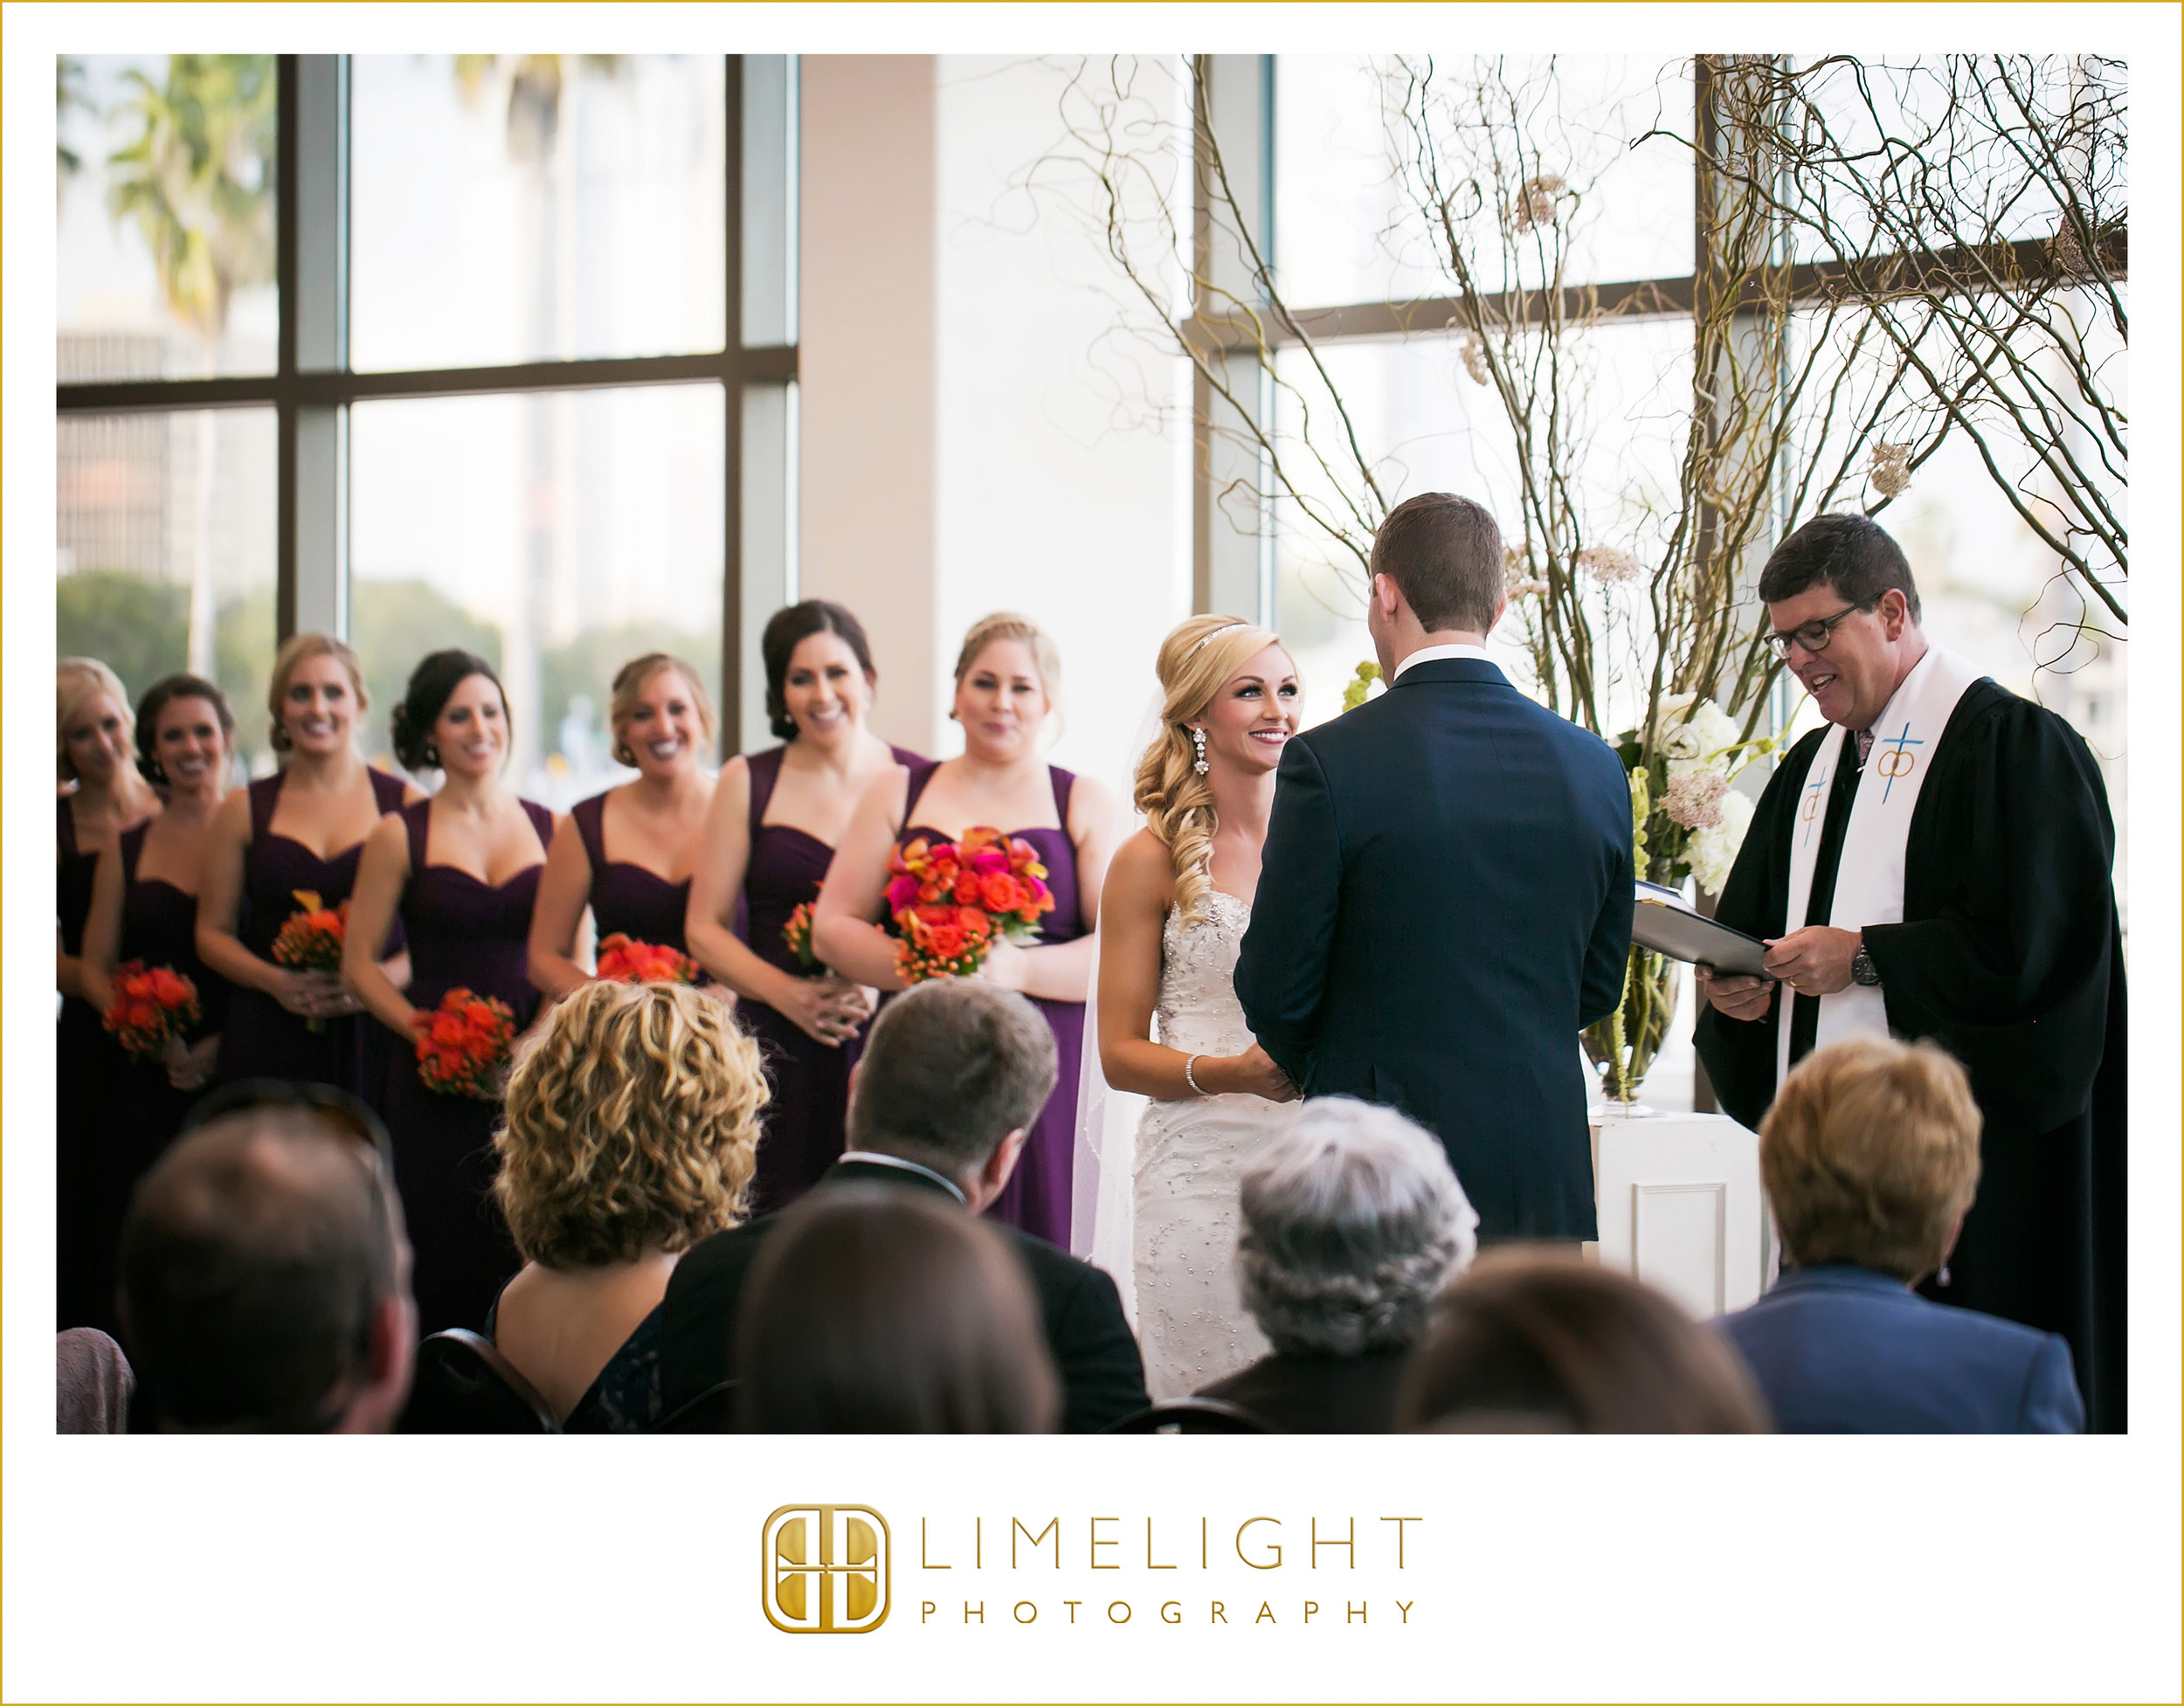 Bride & Groom | Ceremony | Wedding